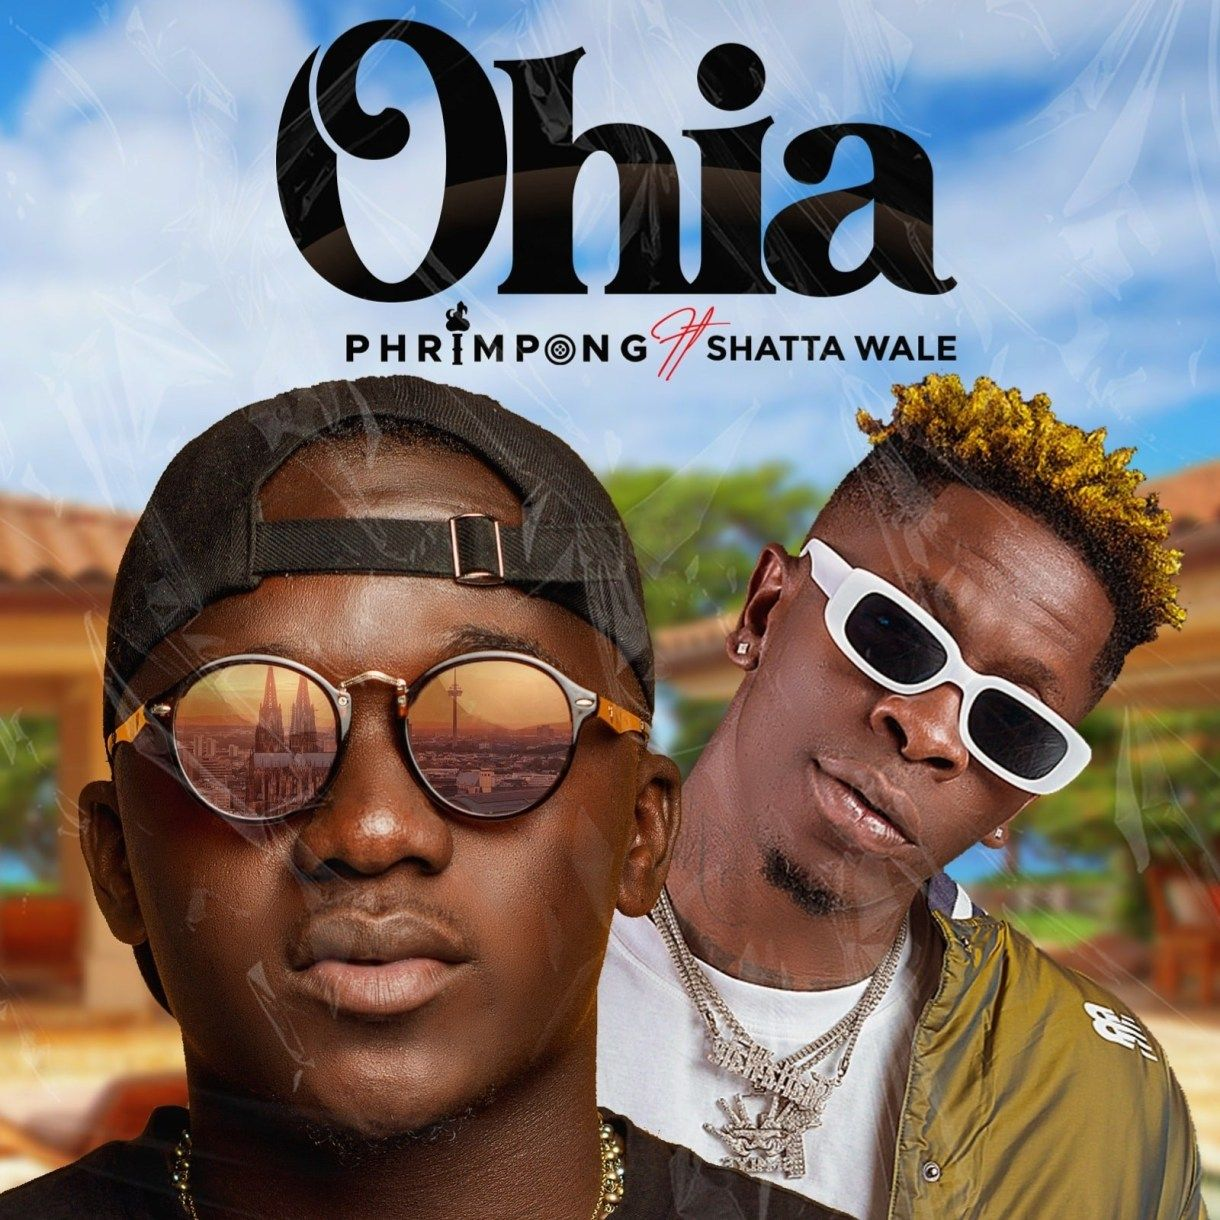 Phrimpong Ohia Ft Shatta Wale In 2021 African Music Videos Wales Music Engineers